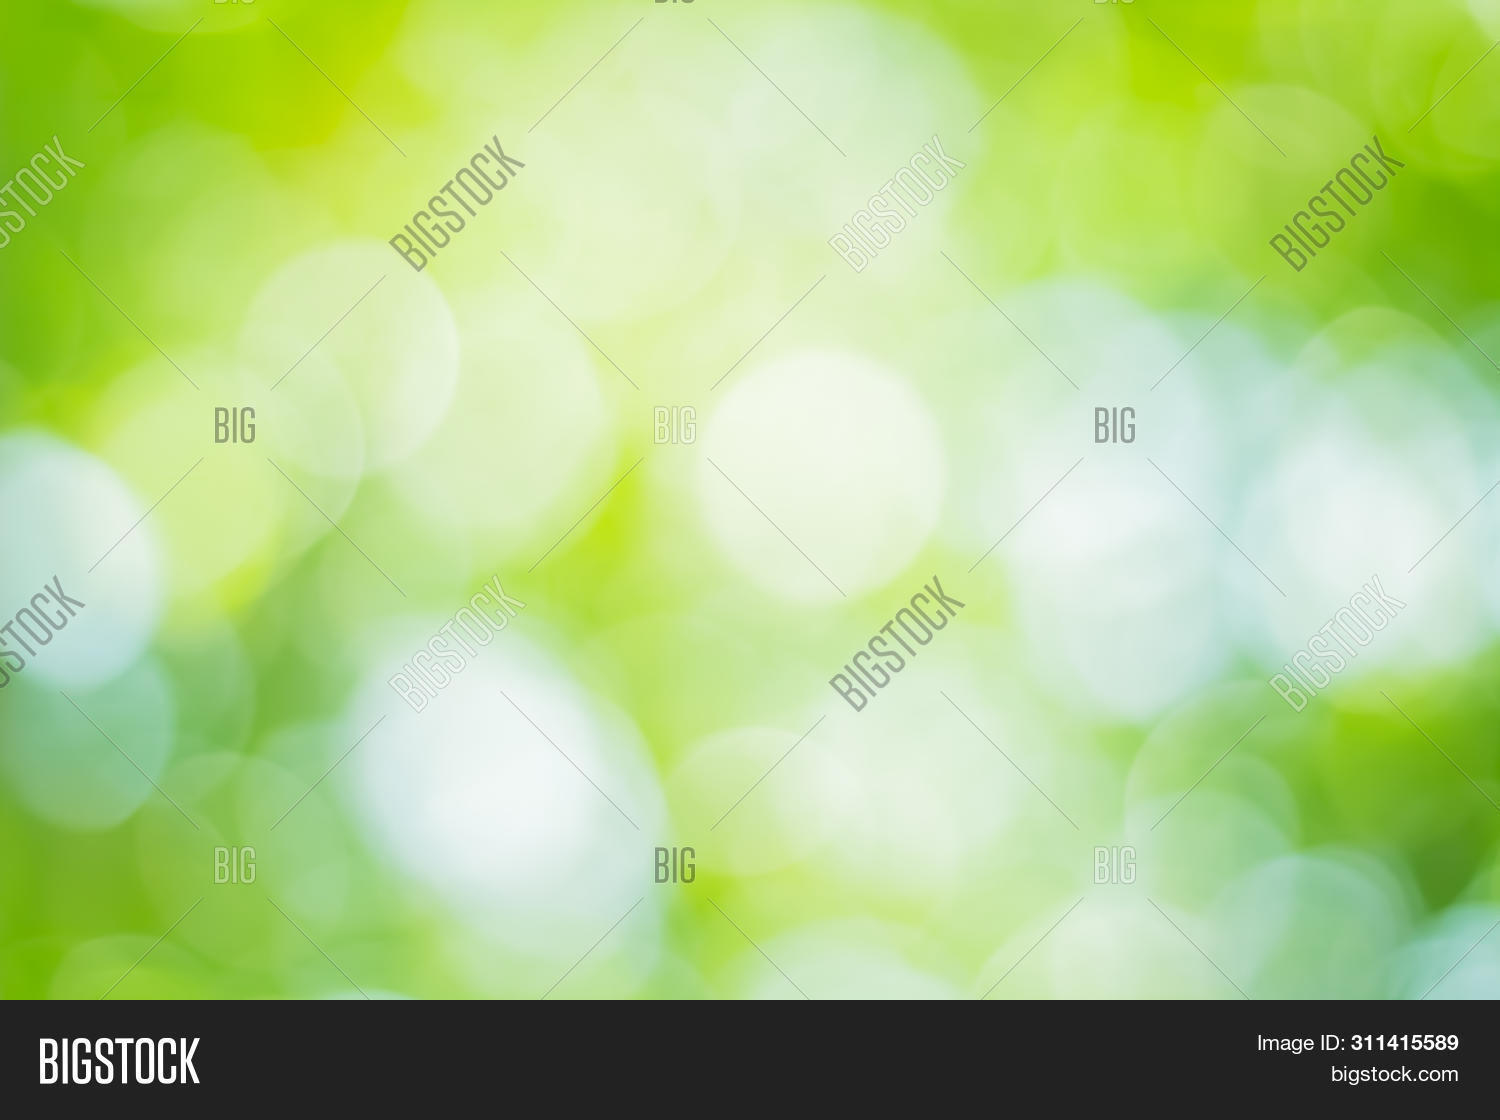 abstract,art,background,beautiful,beauty,blur,blurred,bokeh,bright,color,colorful,concept,day,design,ecology,effect,environment,flora,focus,foliage,forest,fresh,freshness,garden,grass,green,growth,healthy,leaf,leaves,light,lush,natural,nature,nobody,pattern,plant,season,shape,shiny,soft,space,spring,summer,sun,sunlight,sunny,sunshine,texture,white